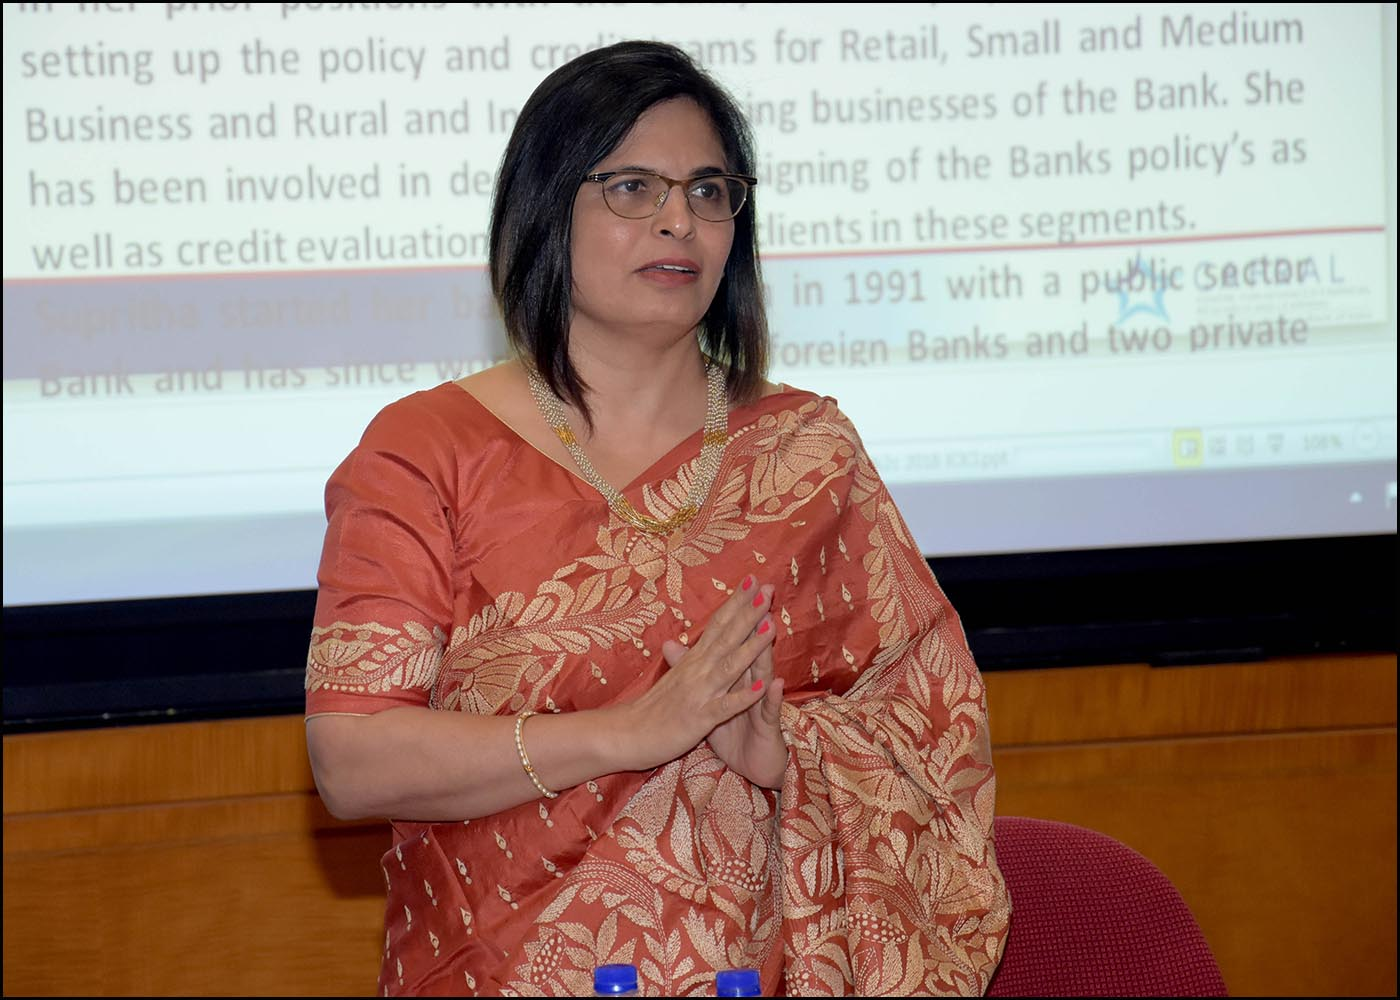 Smt. Supritha Shetty, Group Compliance Officer and Senior General Manager, ICICI Bank Ltd